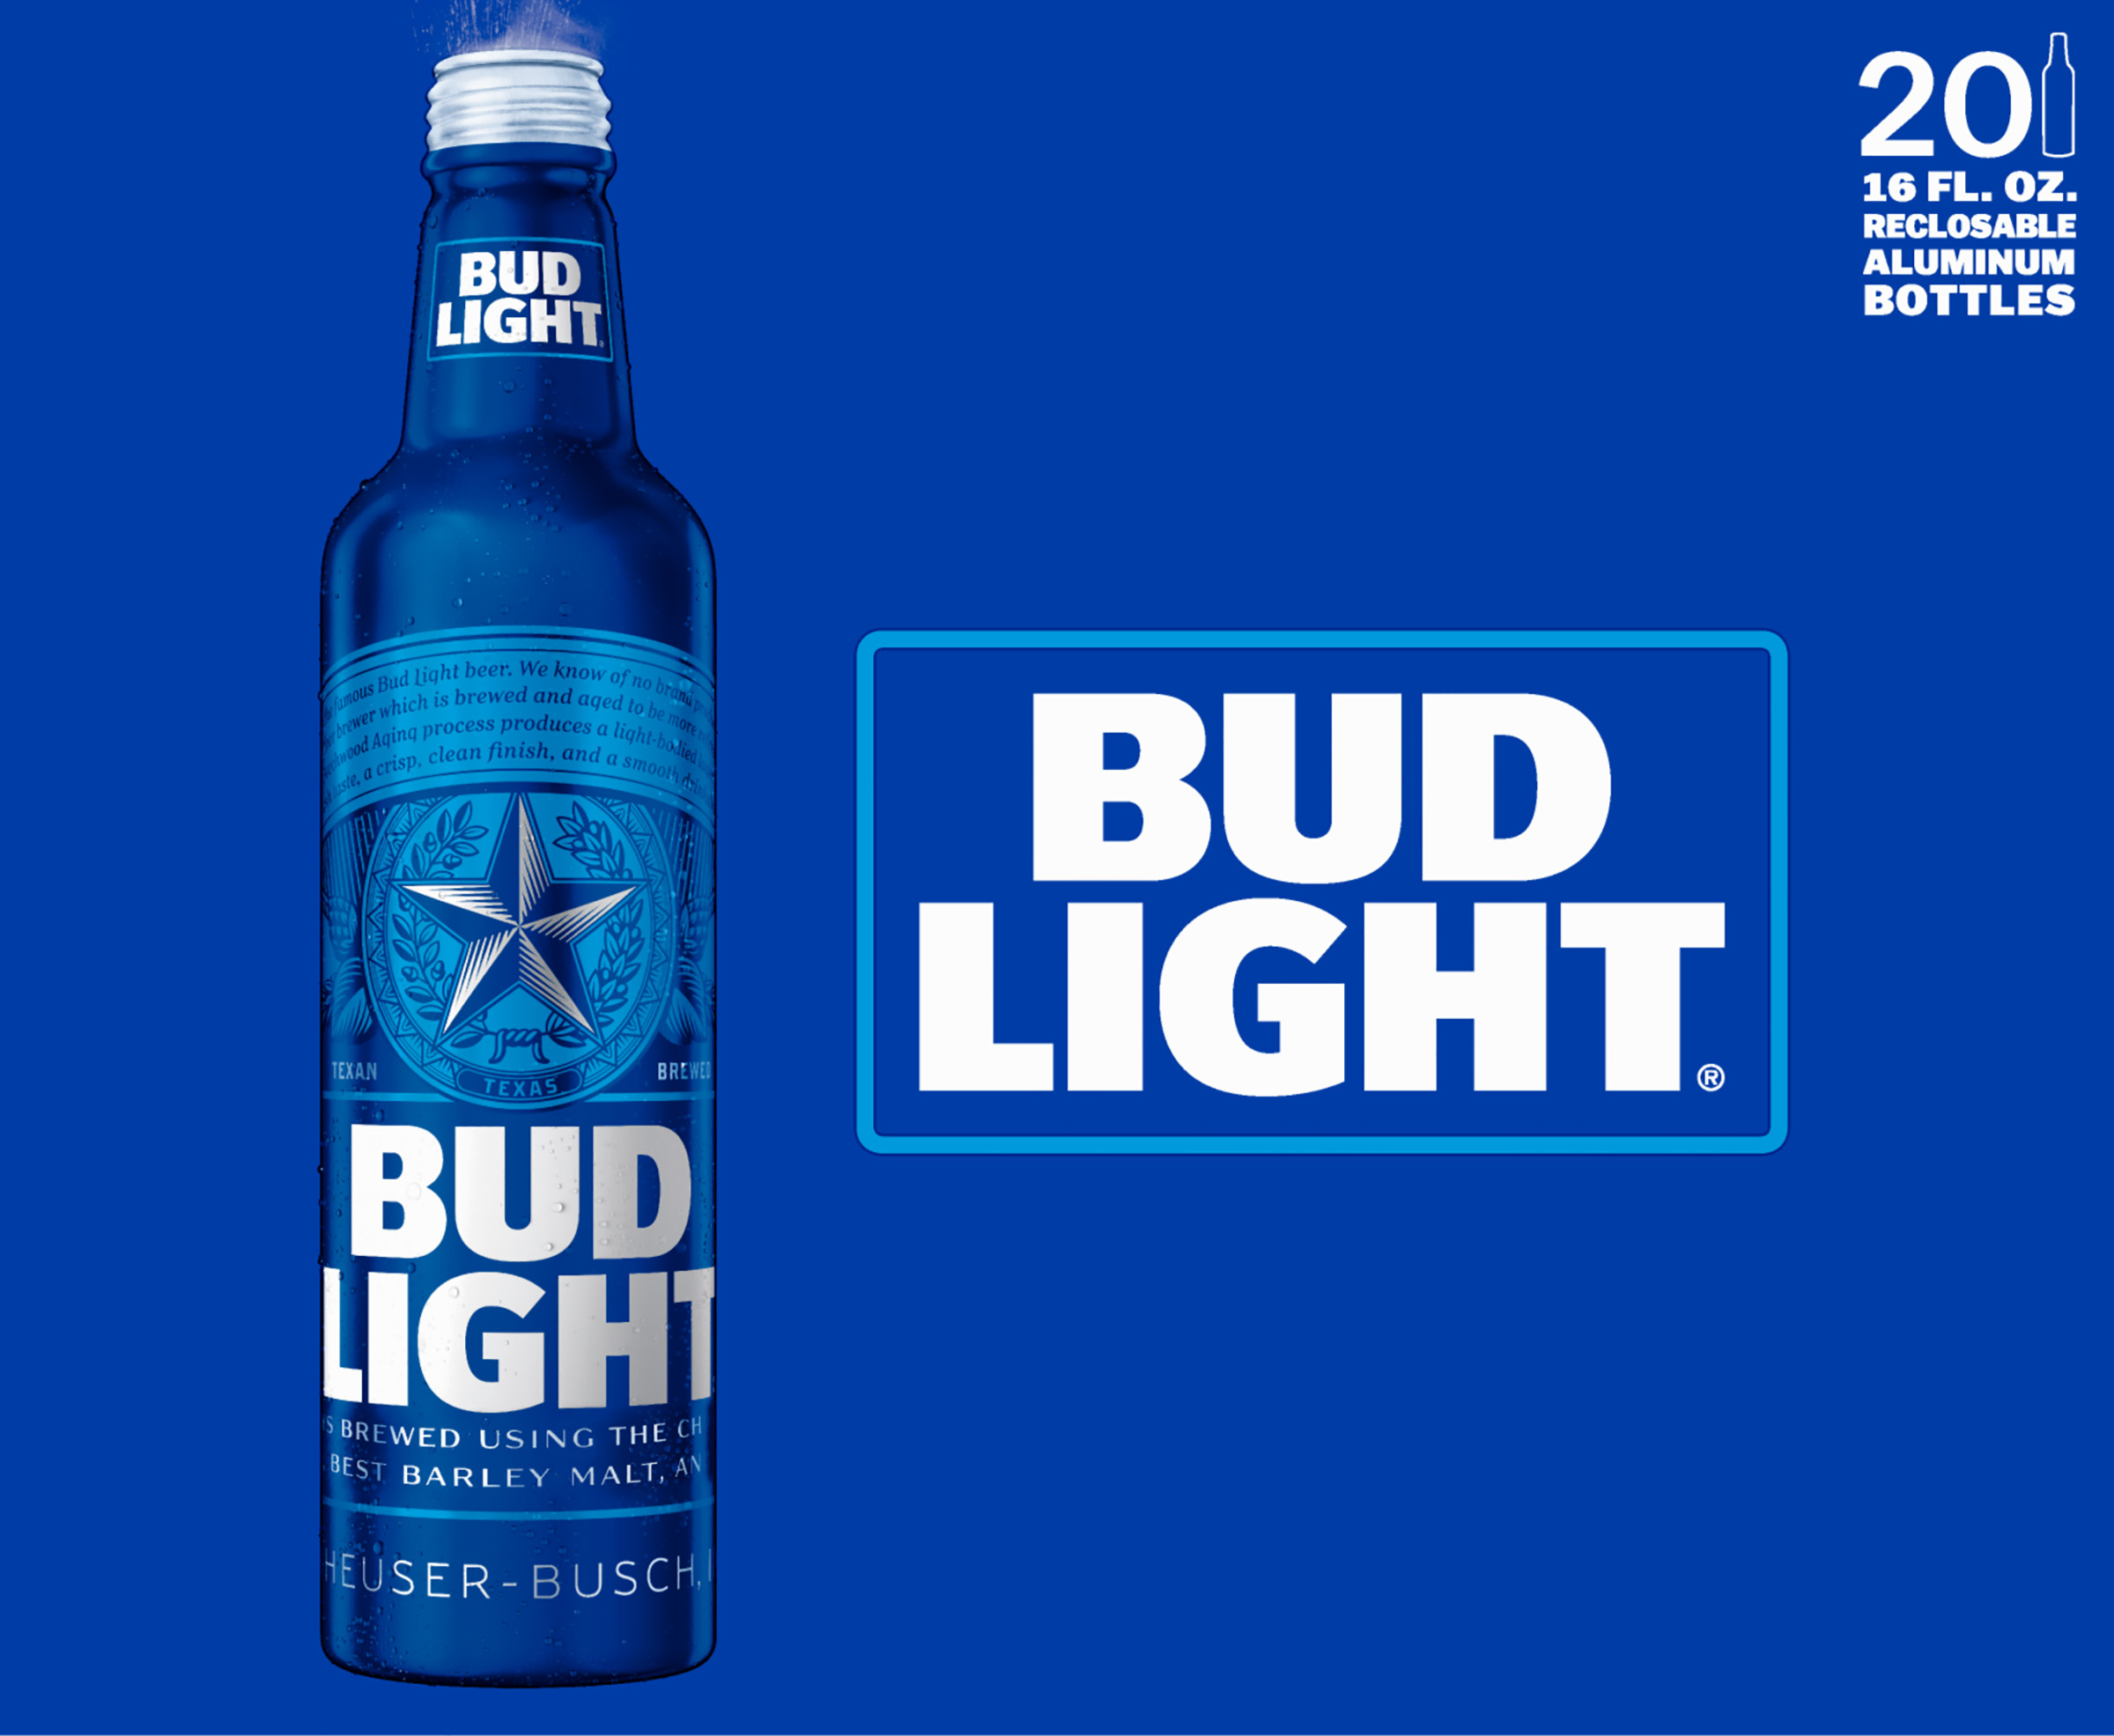 Lovely Bud Light Beer, 20 Pk 16 Fl. Oz. Aluminum Bottles   Walmart.com